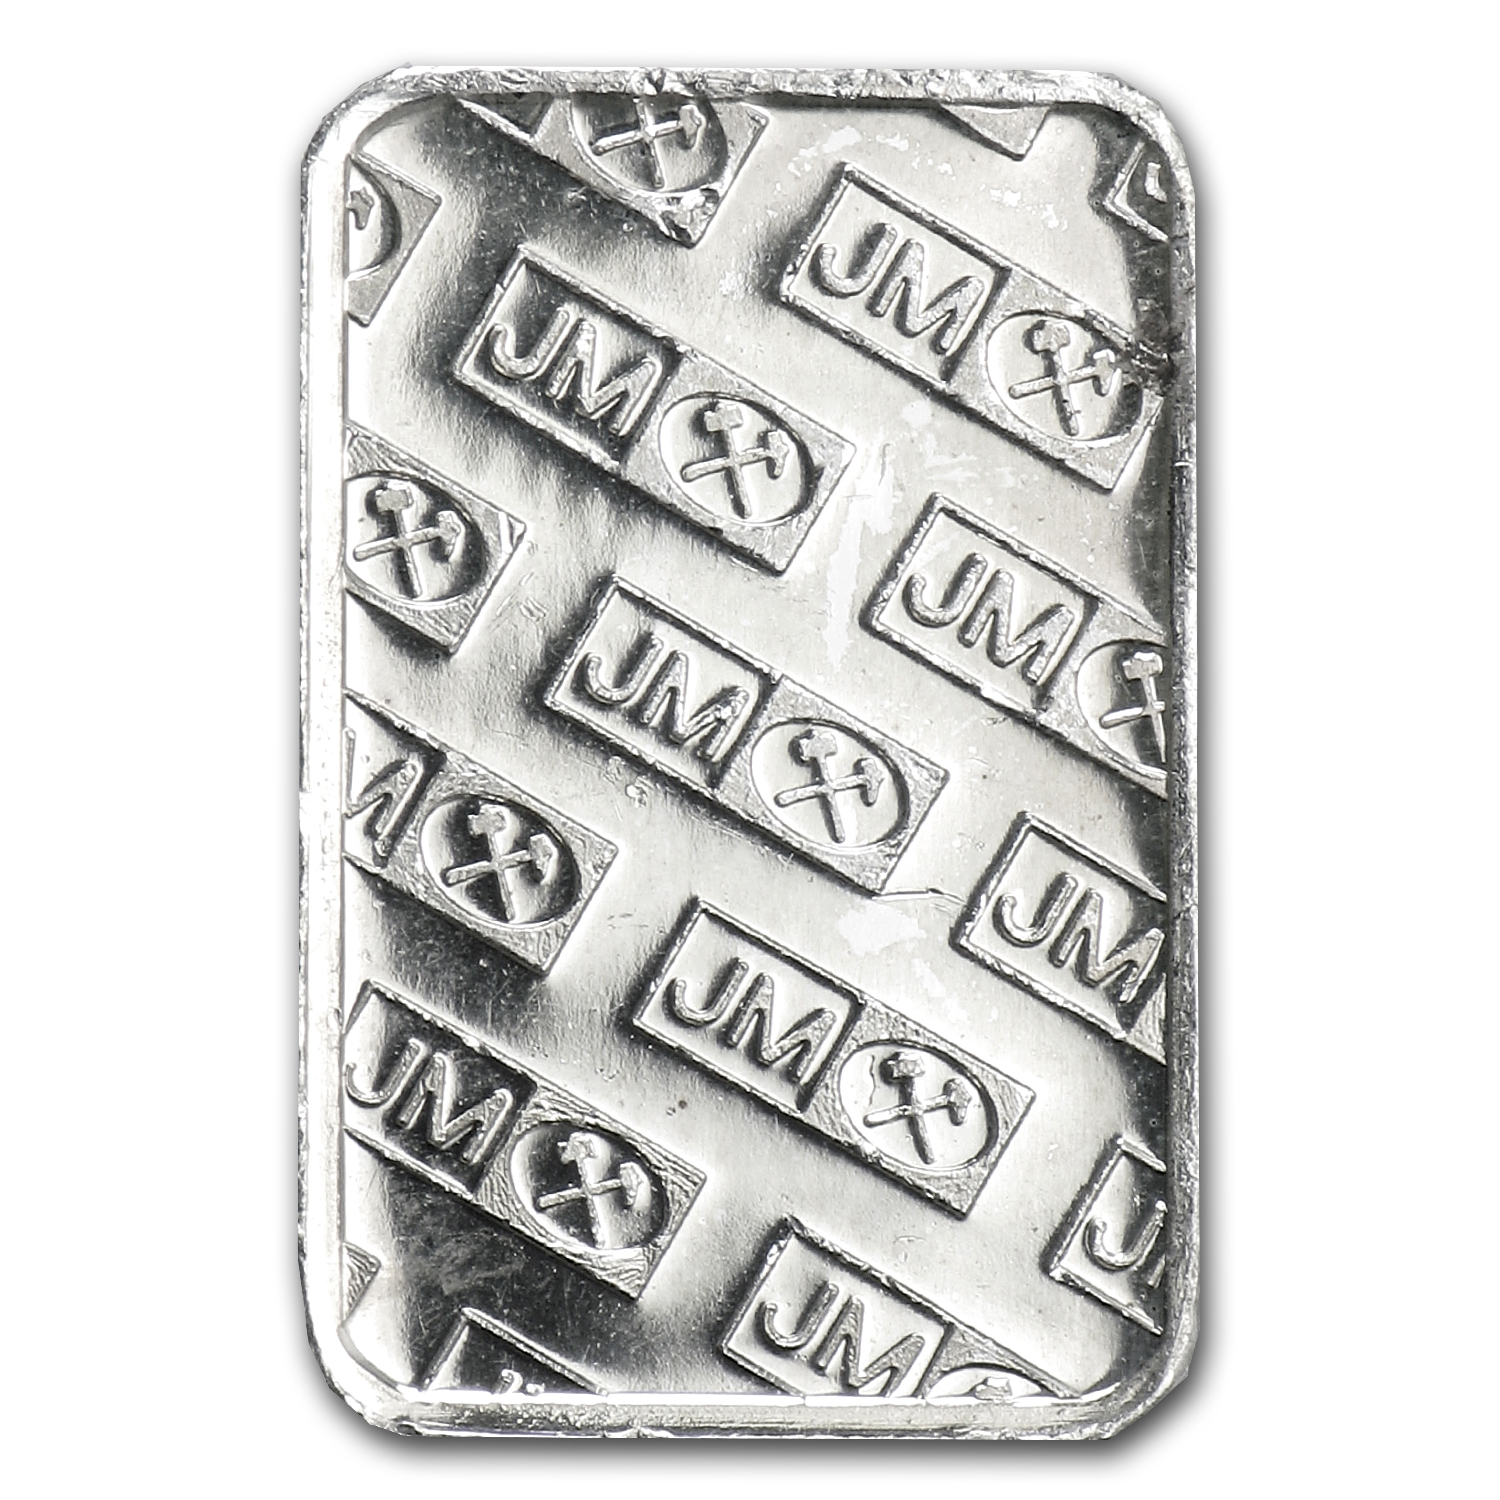 1 gram Silver Bar - Johnson Matthey